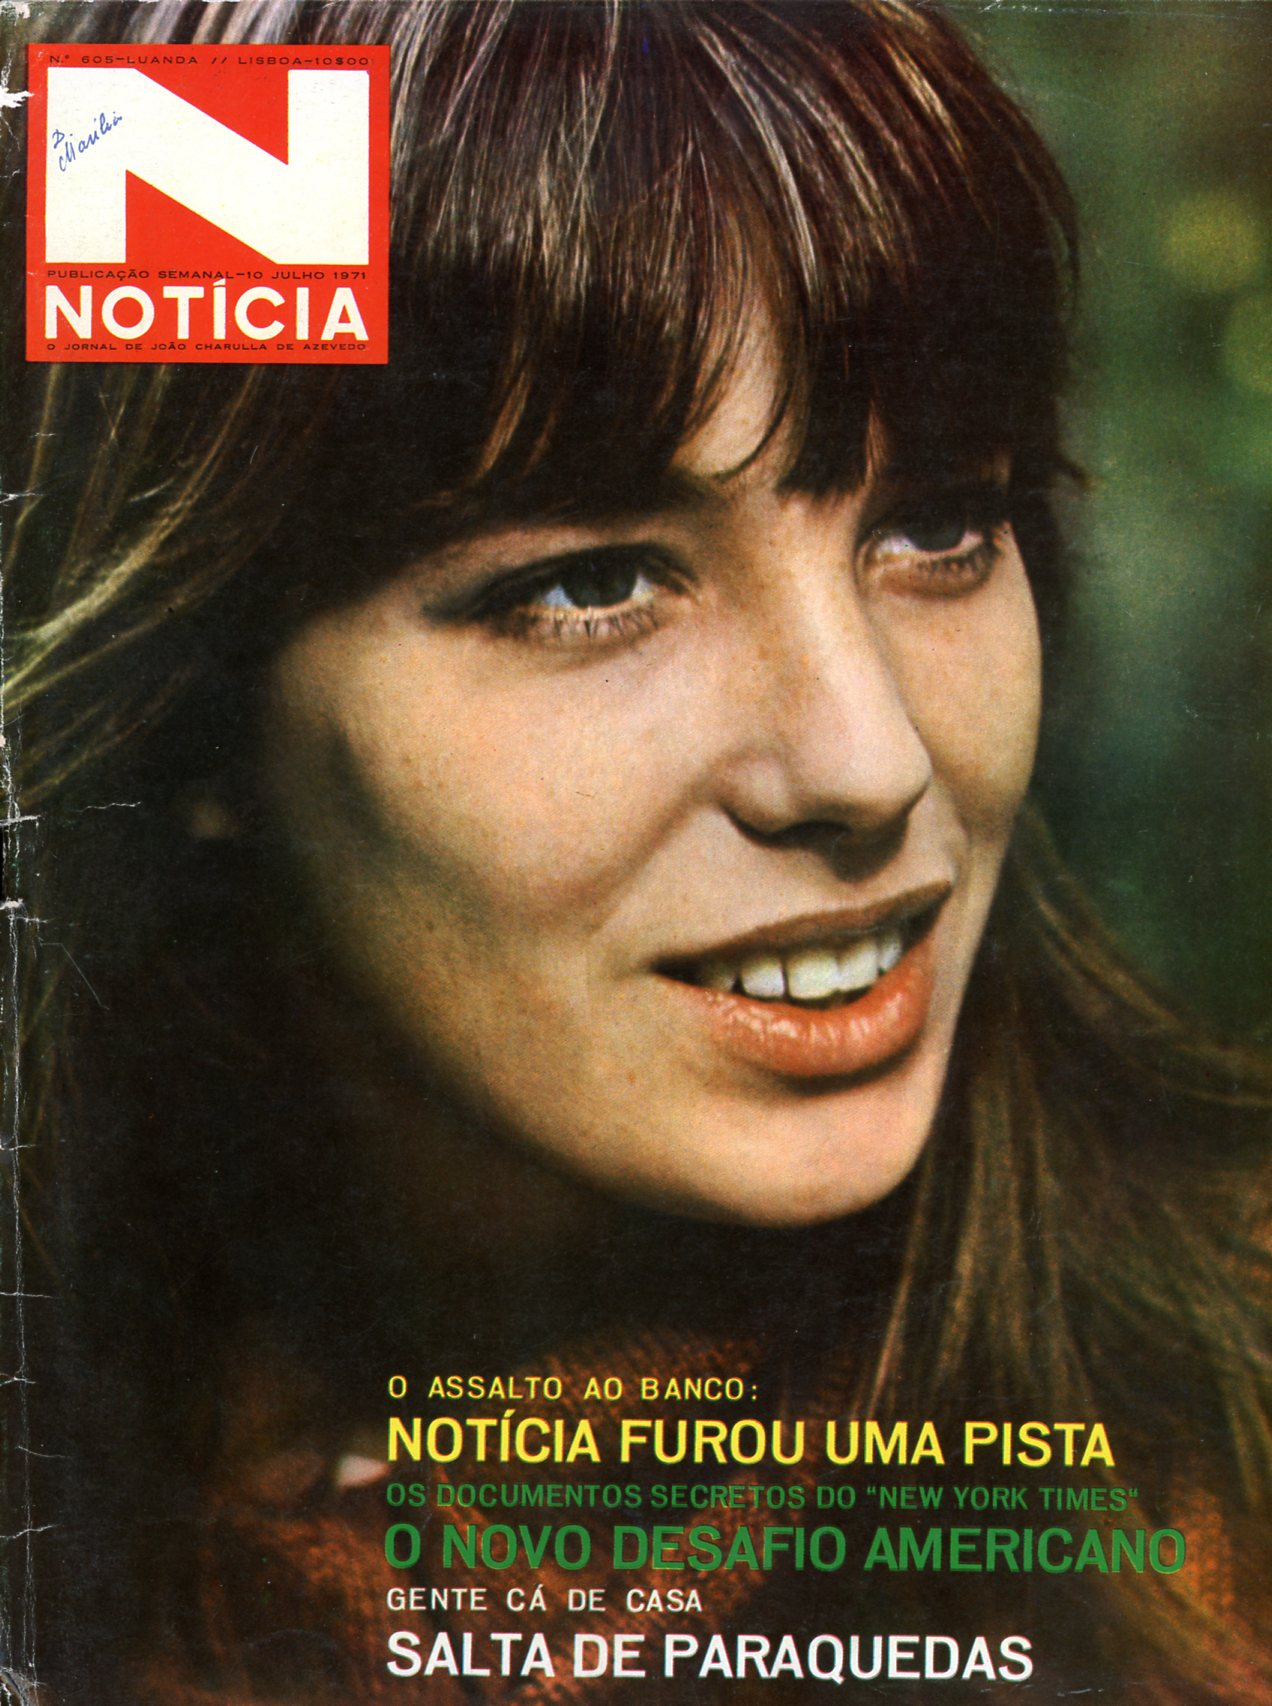 N Noticia, 1971, Portugal